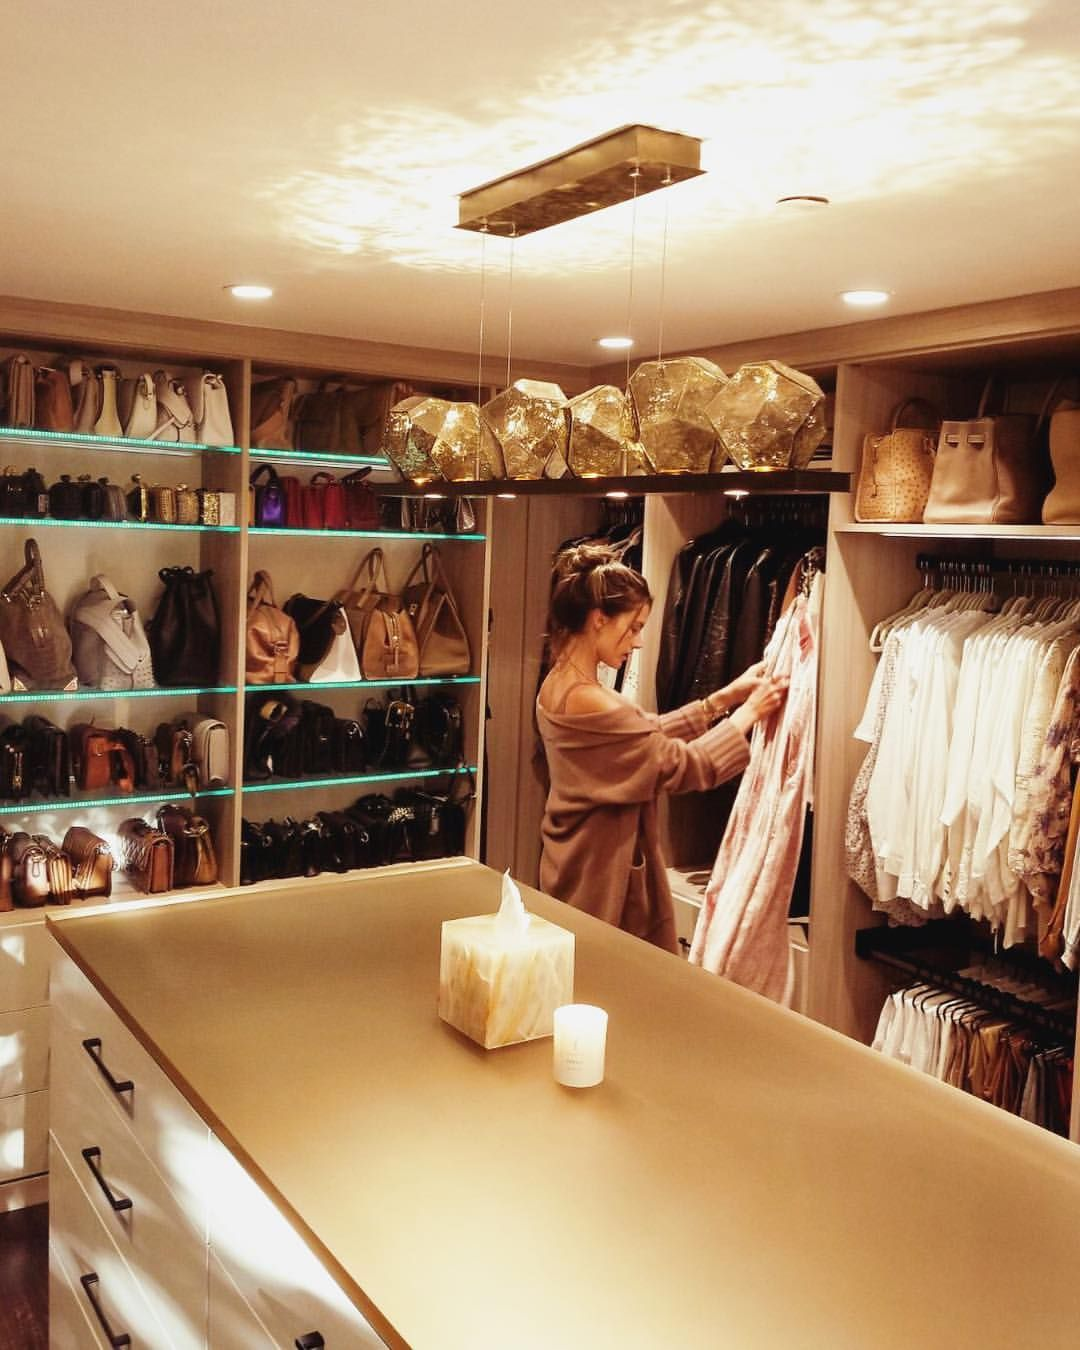 "Alessandra Ambrosio on Instagram: ""Weekend fun ... organizing my new dream closet �� #californiaclosets #ccbeforeafter #cccollab"""